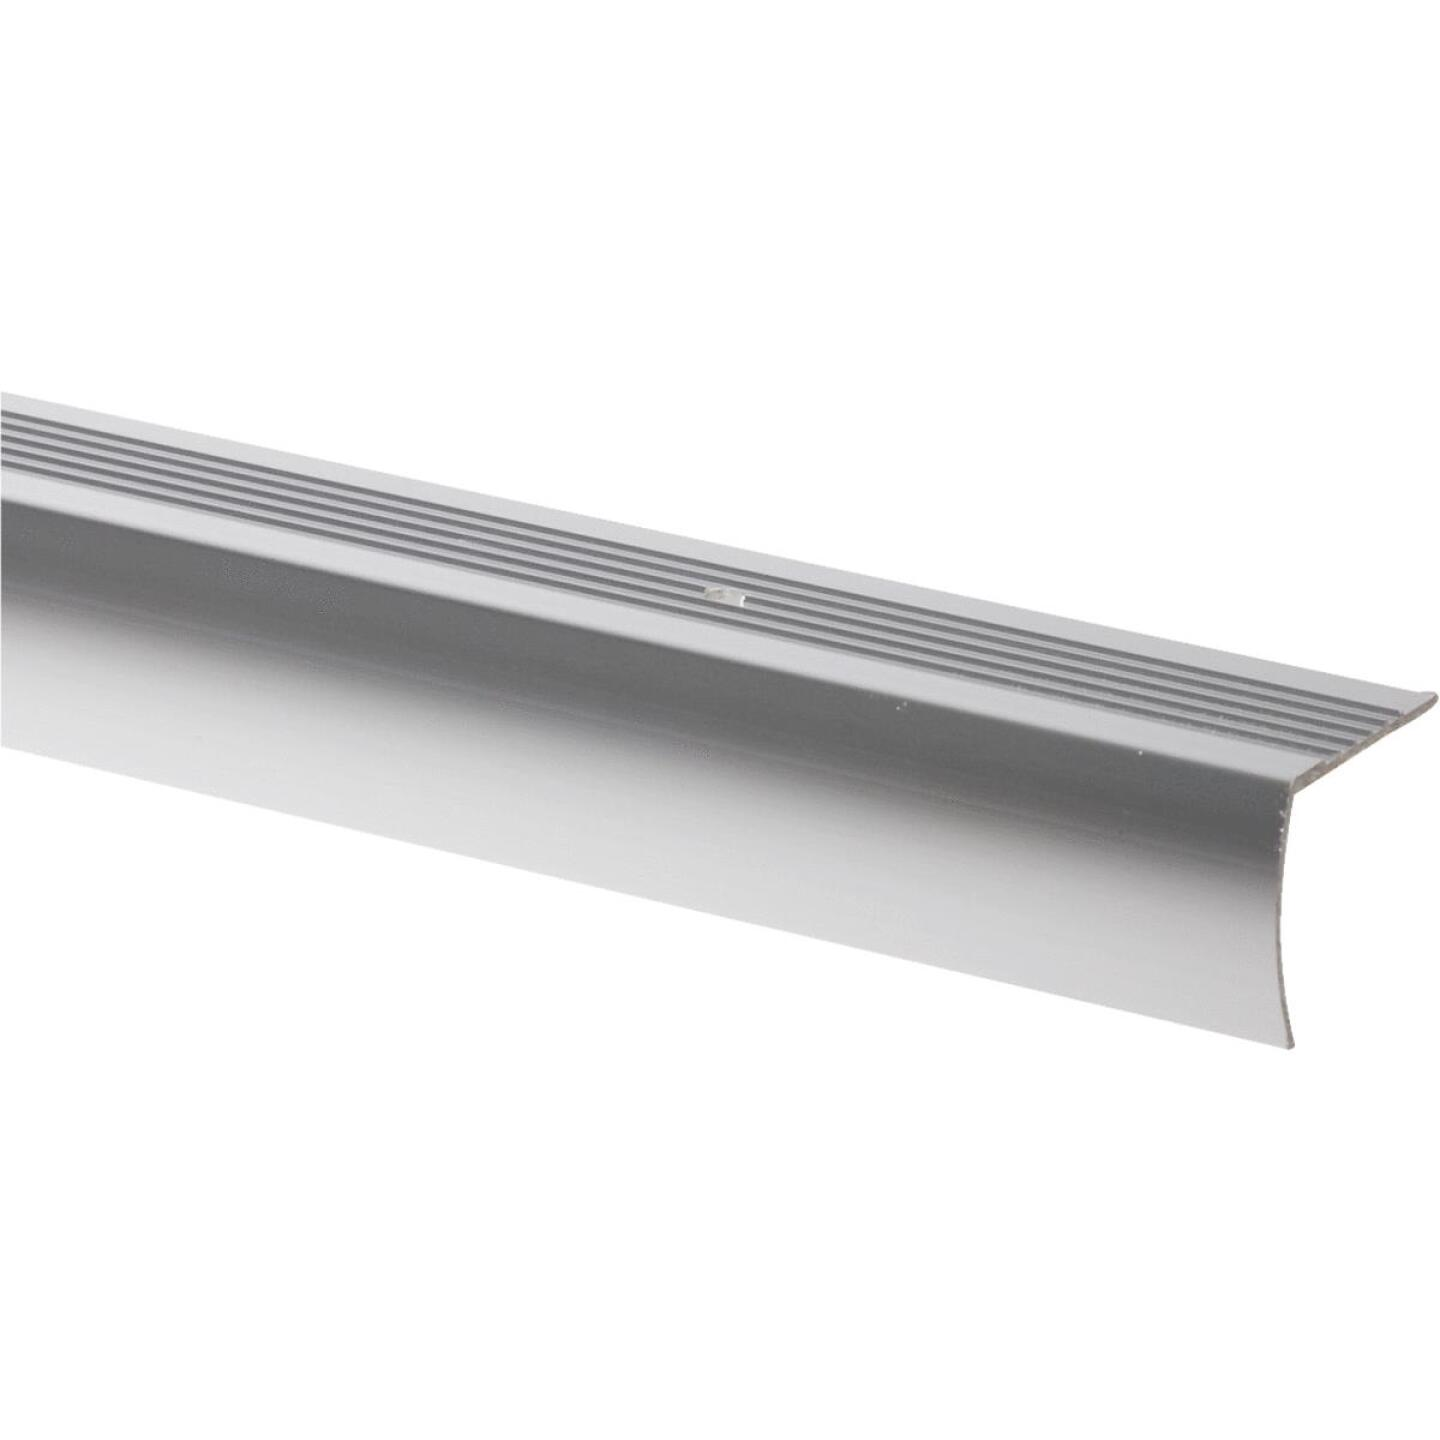 M-D Polished Aluminum 1-1/8 In. W x 36 In. L Aluminum Stairnose Image 1